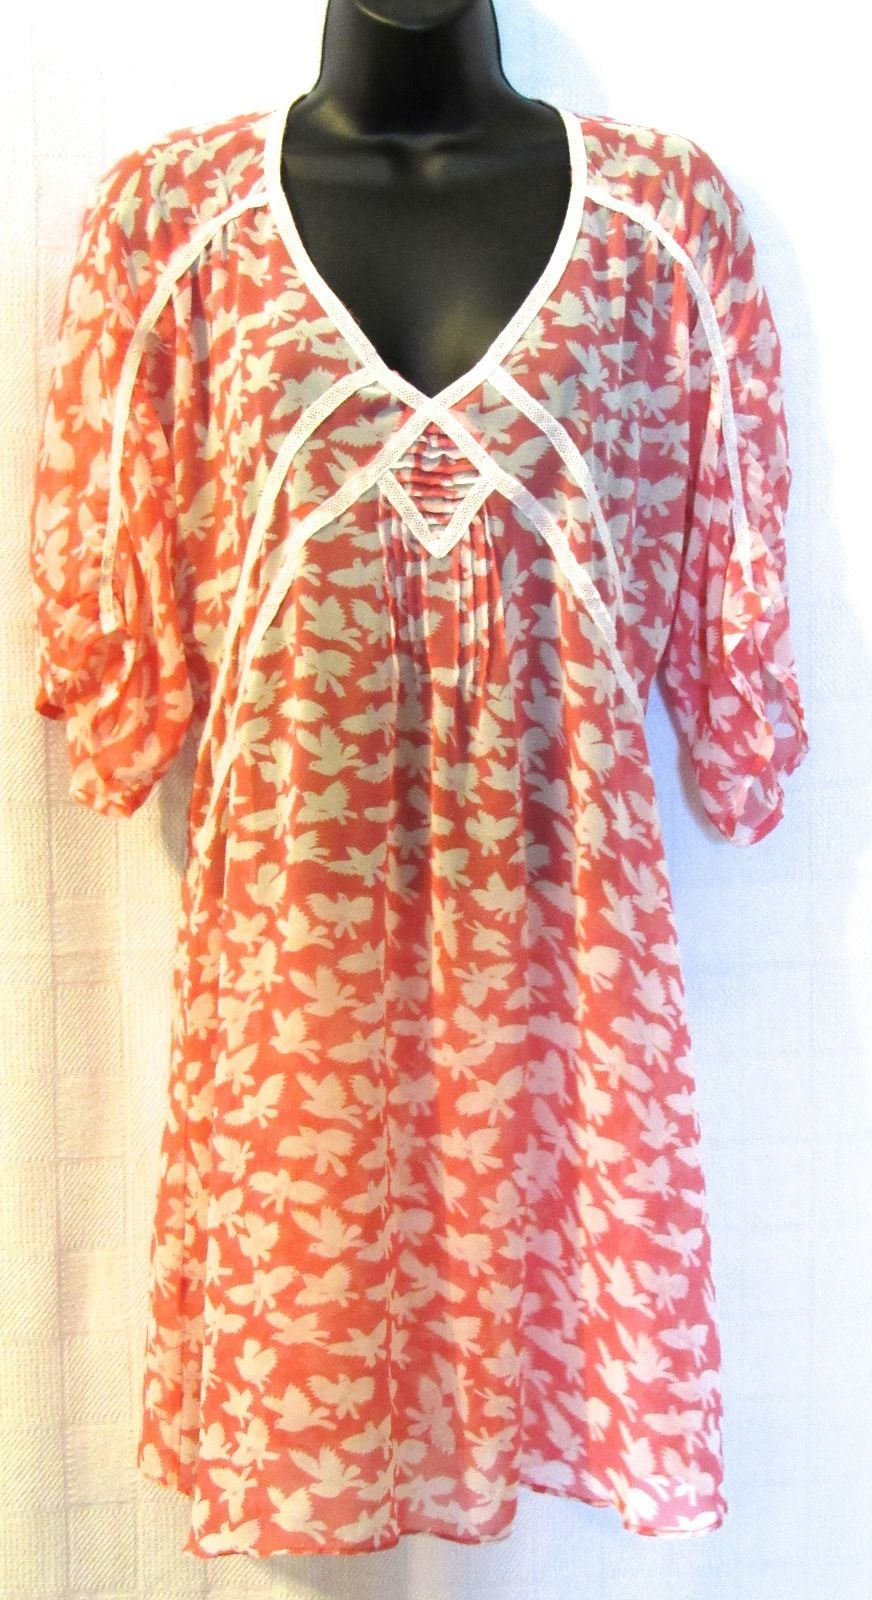 Black Rainn Bird Print Multi-Color Peach Chiffon Top Polyester Size: M